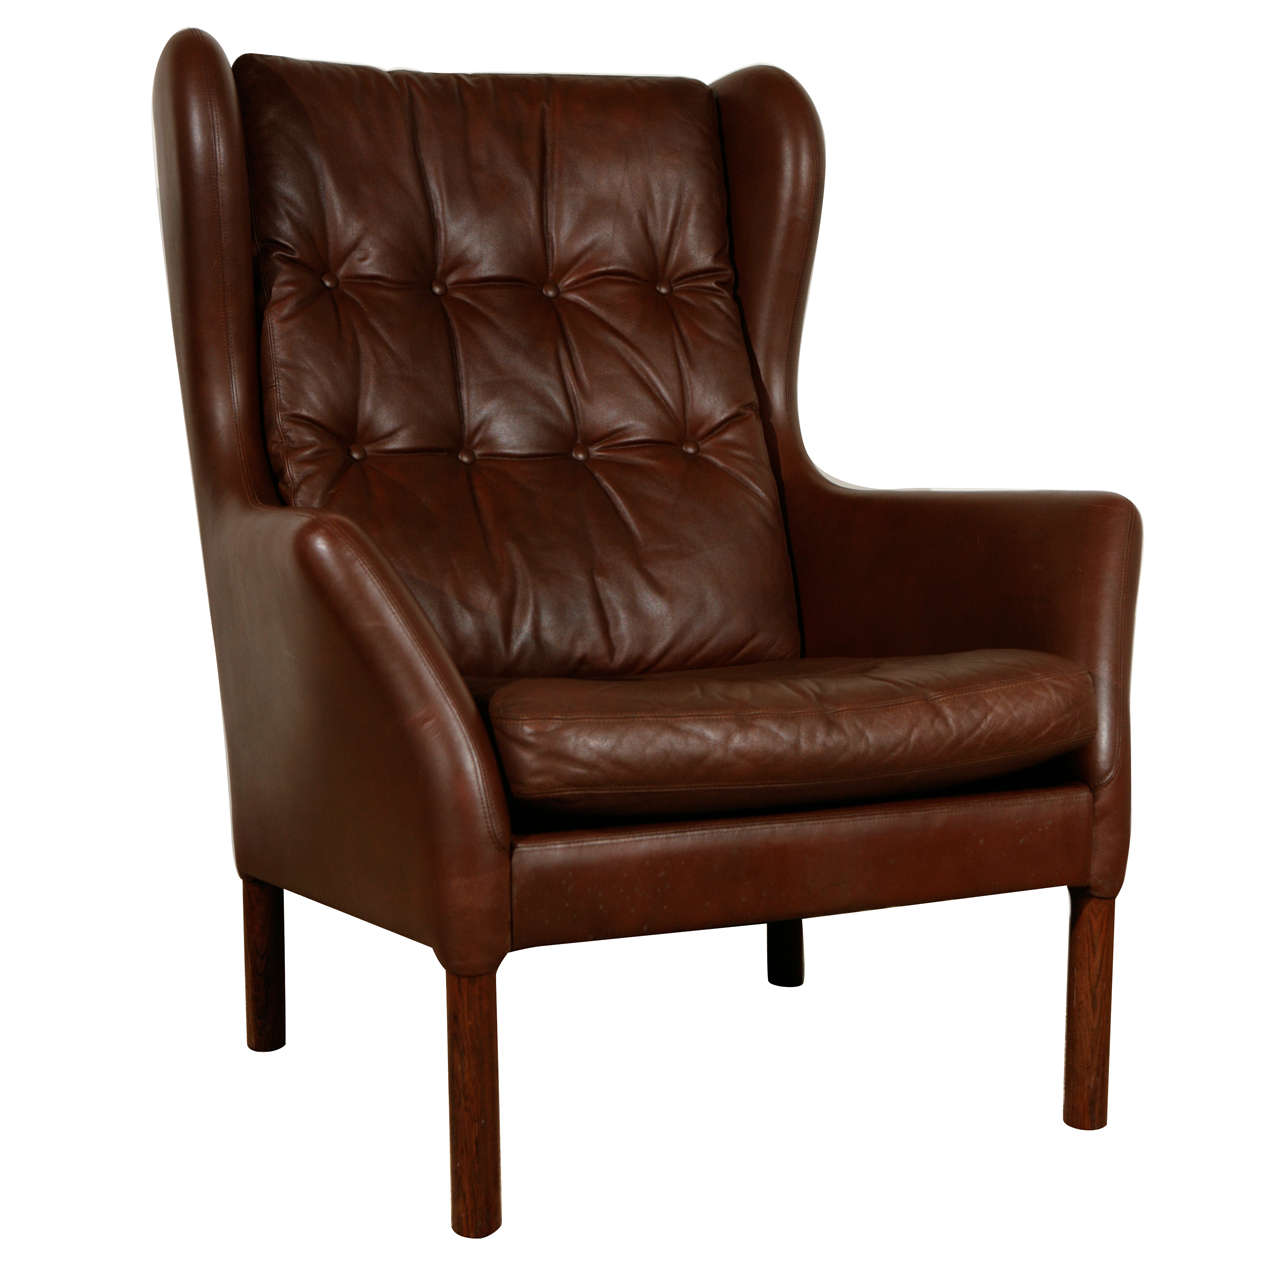 Vintage leather wingback chair at 1stdibs for Furniture chairs